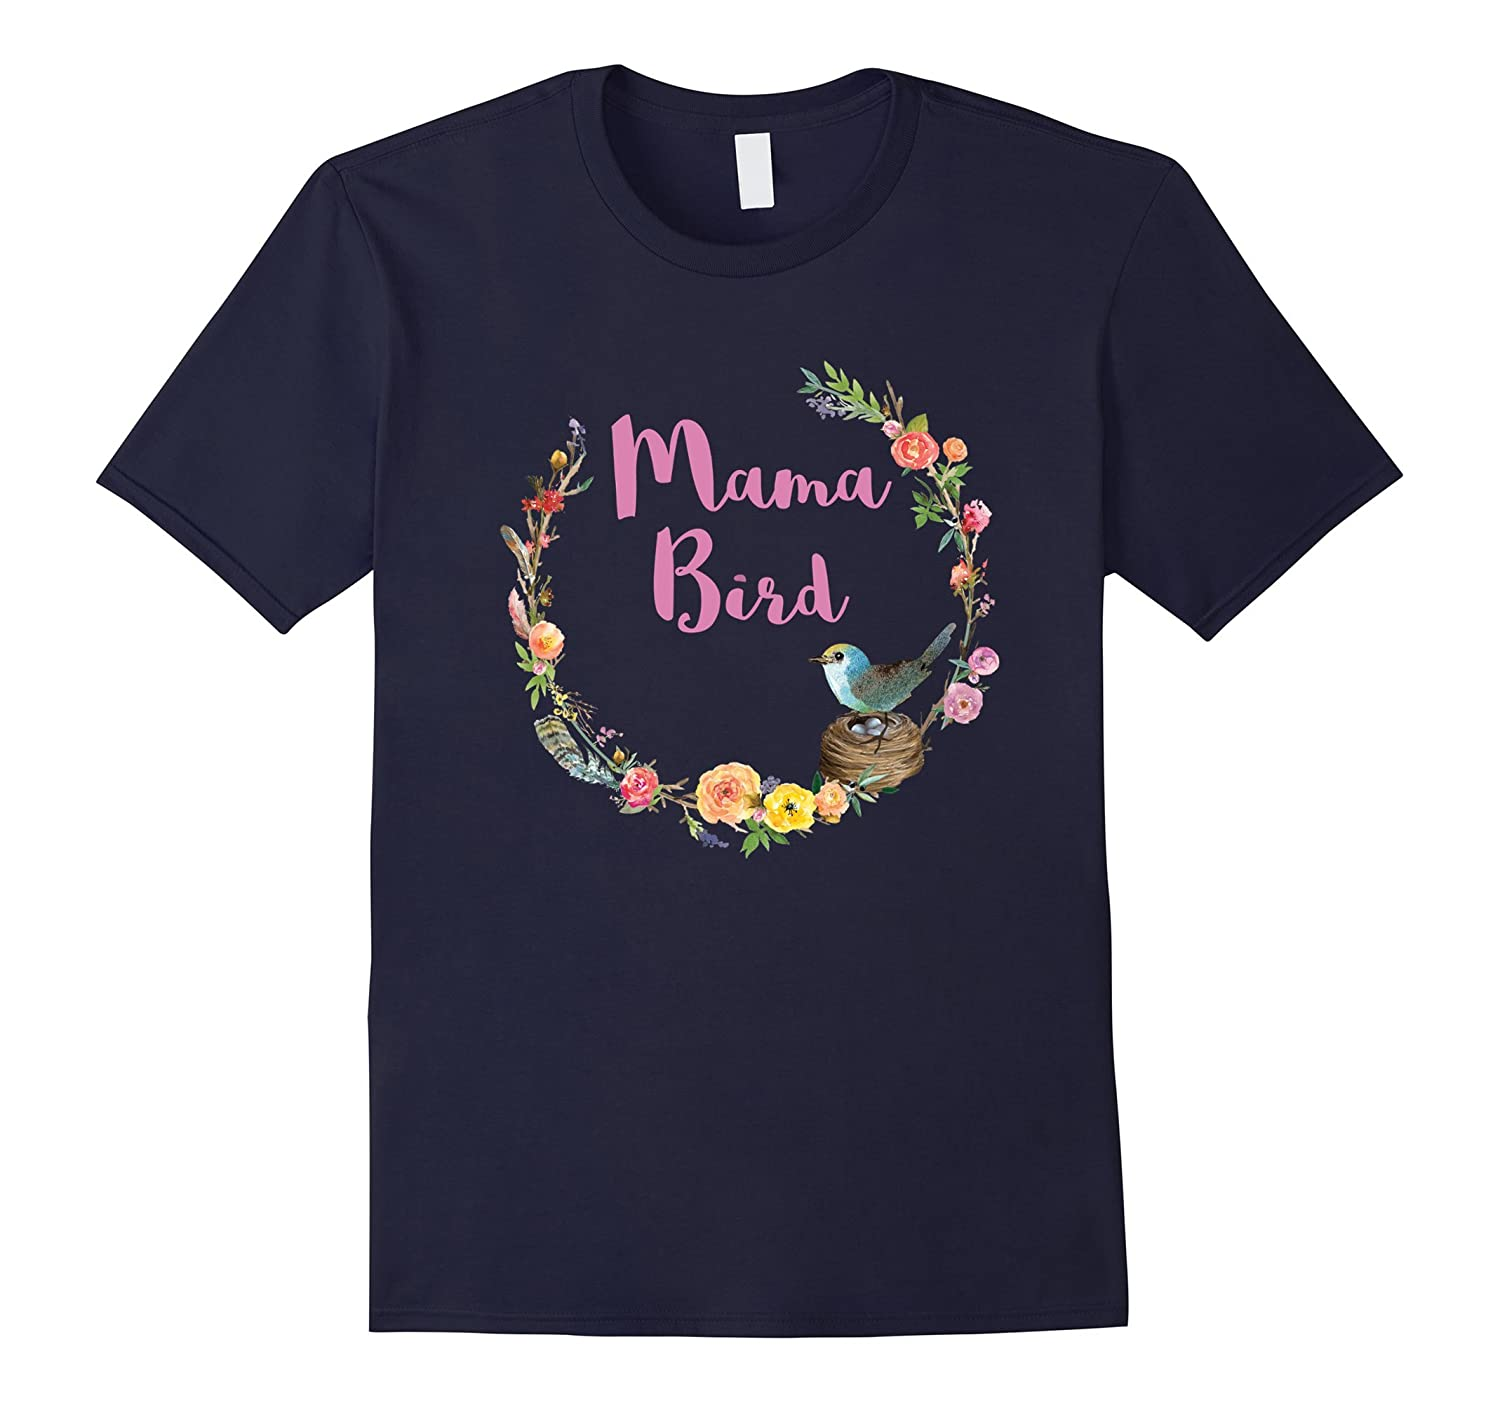 Mama Bird Floral Boho Bohemian Chic Mother Mom T-Shirt-Vaci